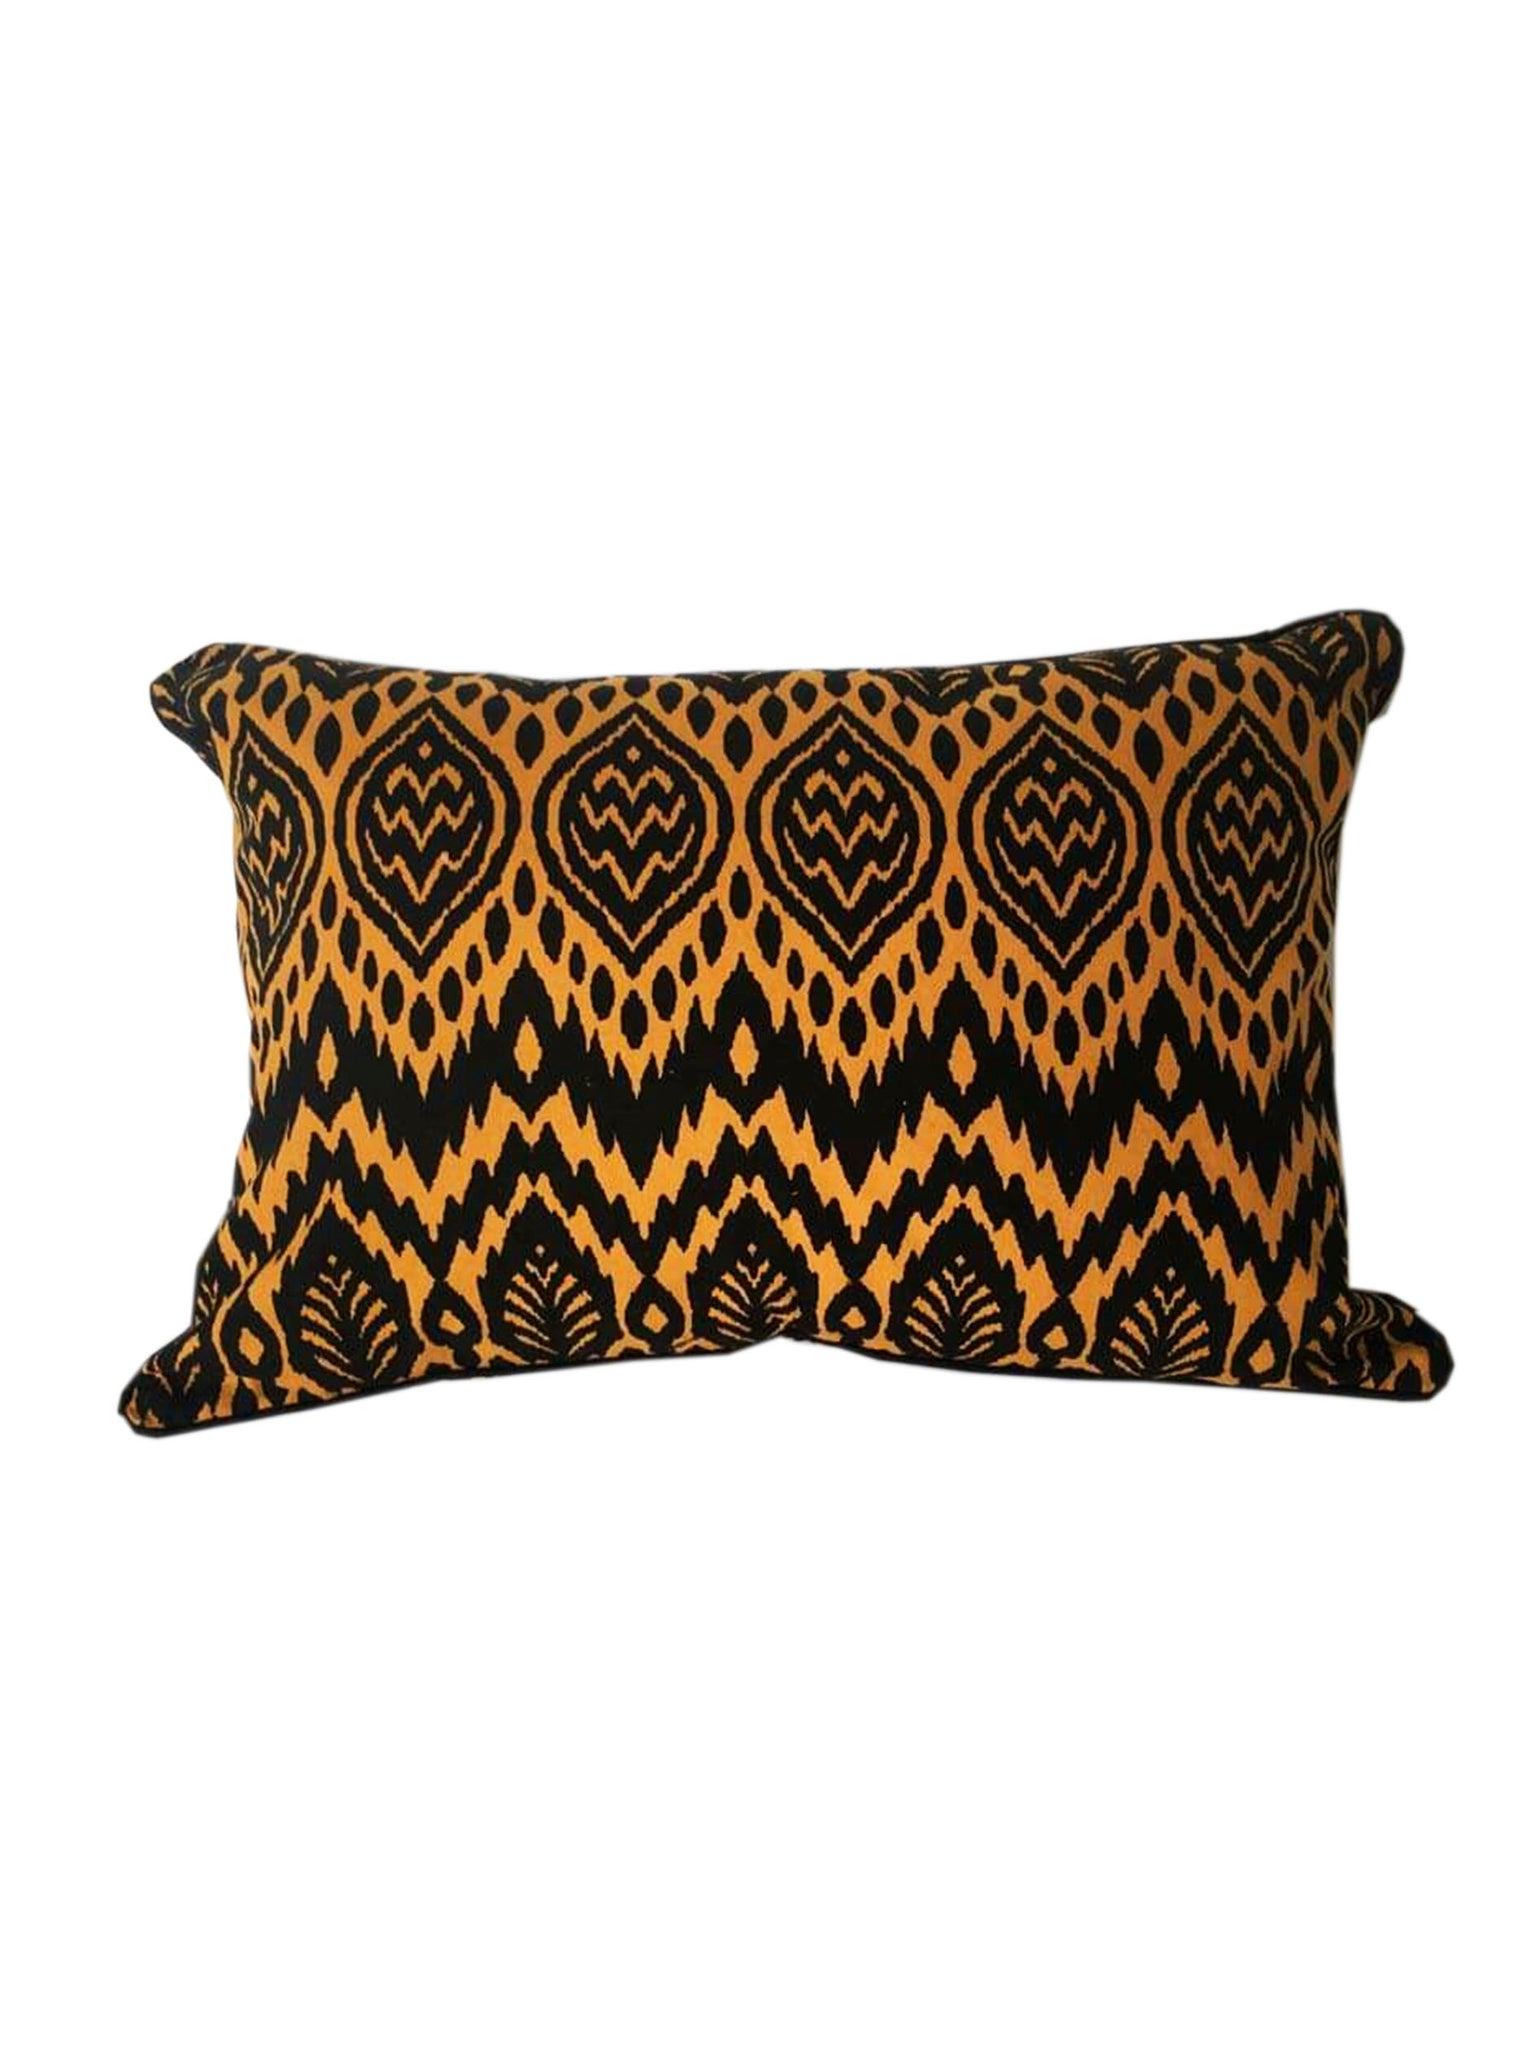 Zambia Black & Gold Cushion 30 x 50 cm